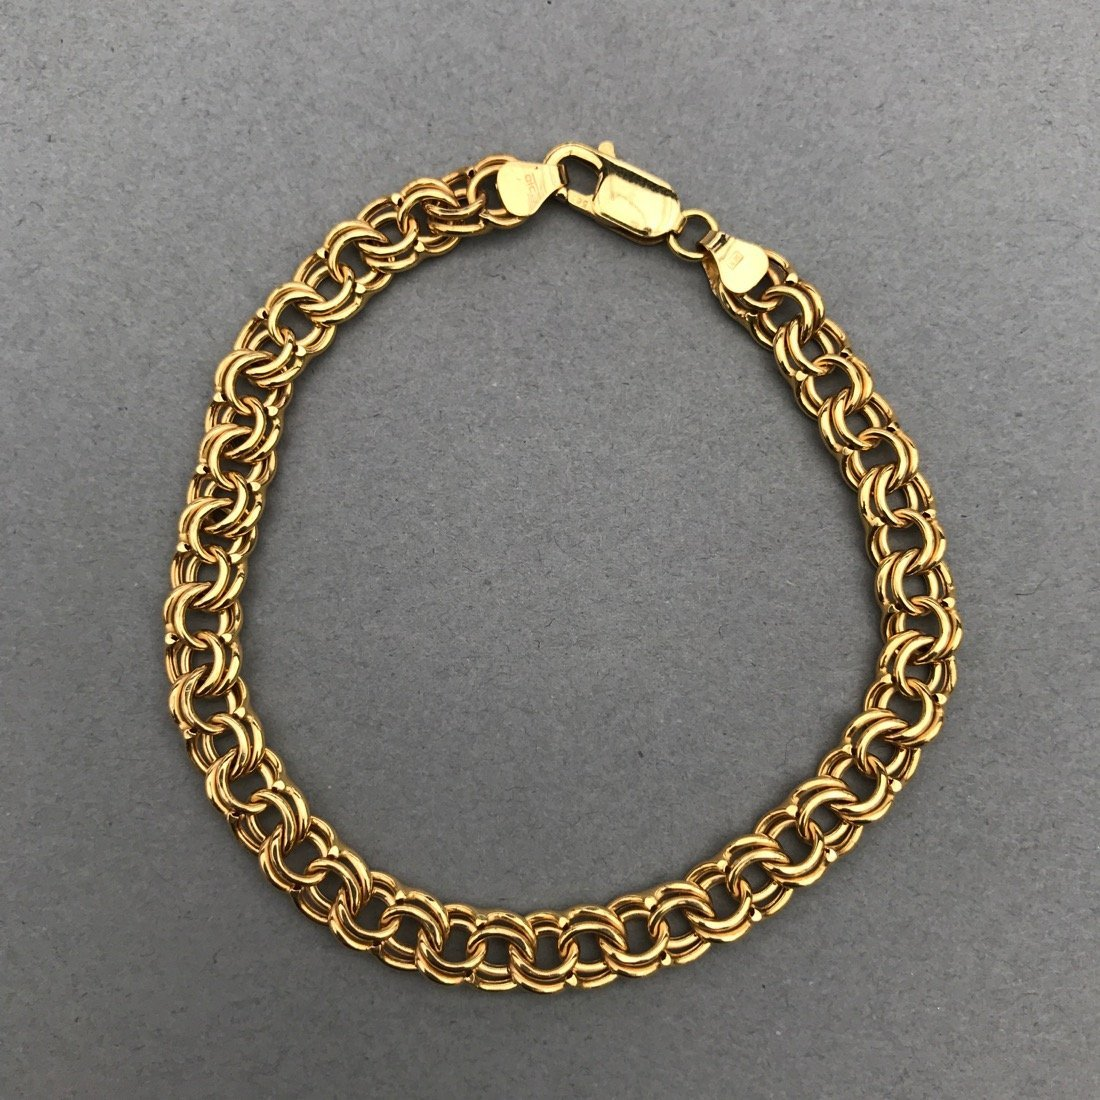 14K Gold Chainmail Style Bracelet